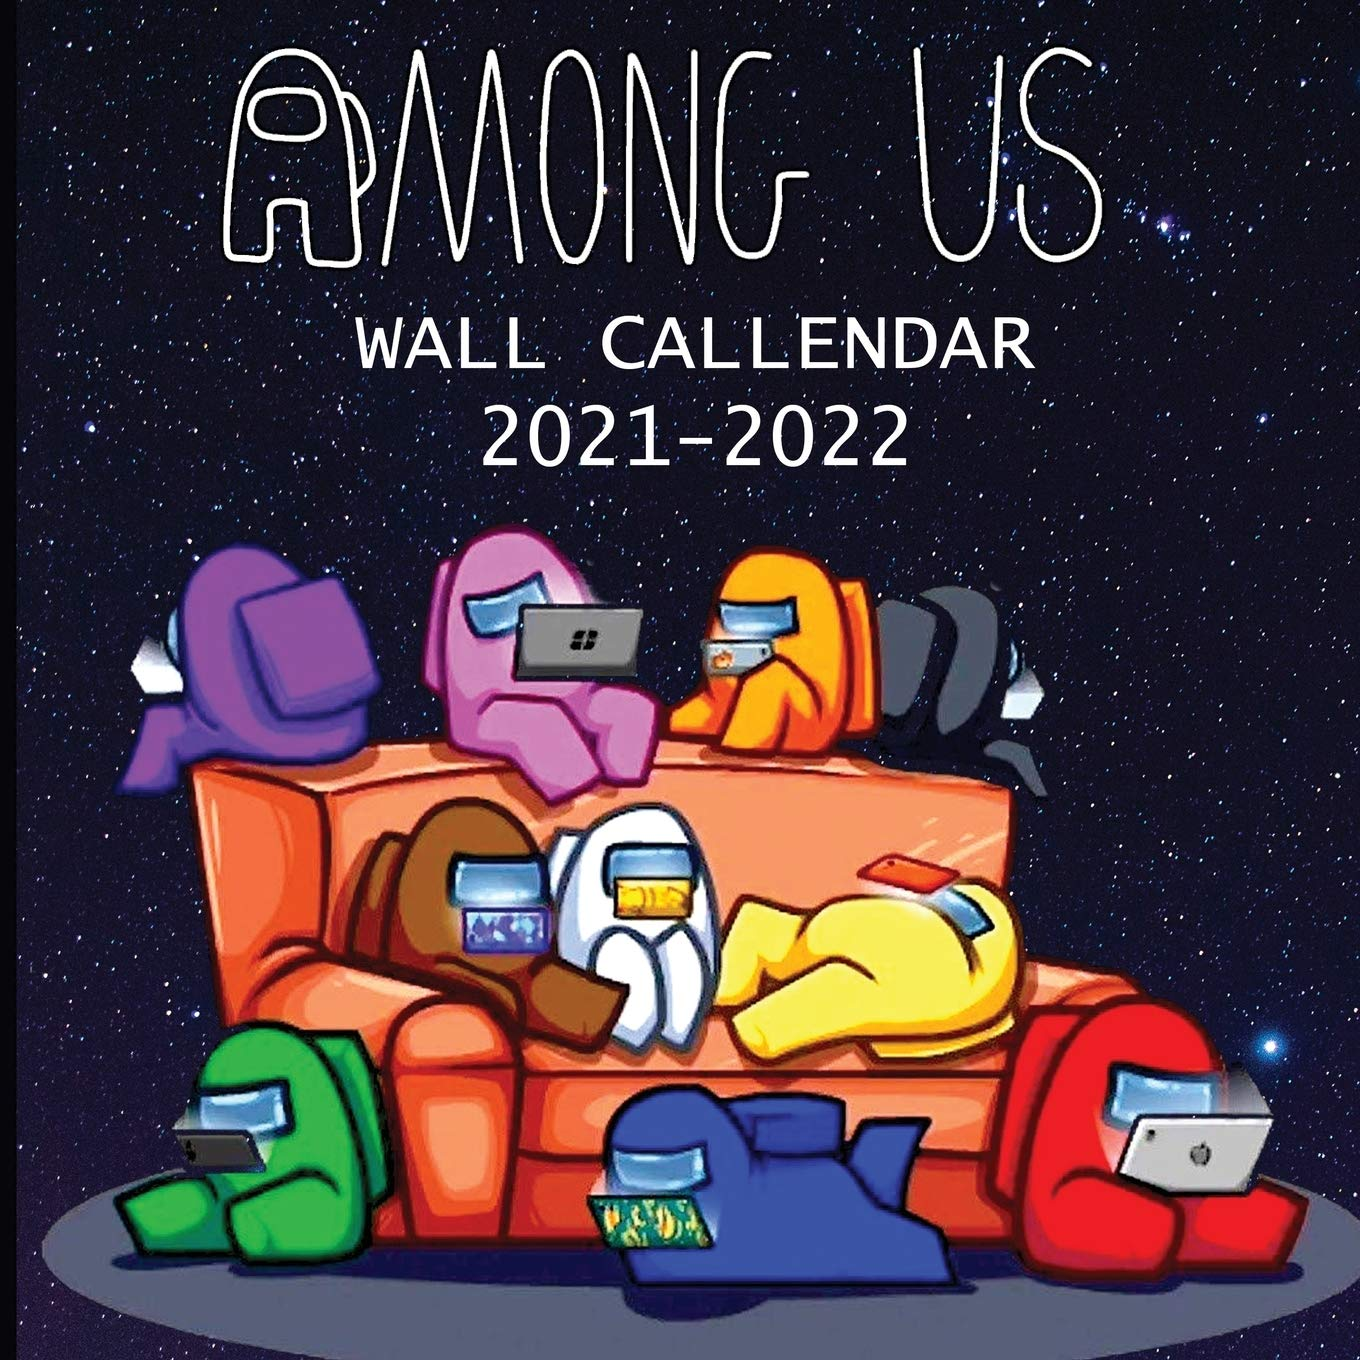 Buy 2021 2022 Among Us Book Calendar 2021 2022 Among Us Imposter And Colorful Imposter And Crewmate Characters 8 5x8 5 Inches Large Size 18 Months Book Wall Calendar Book Online At Low Prices In India